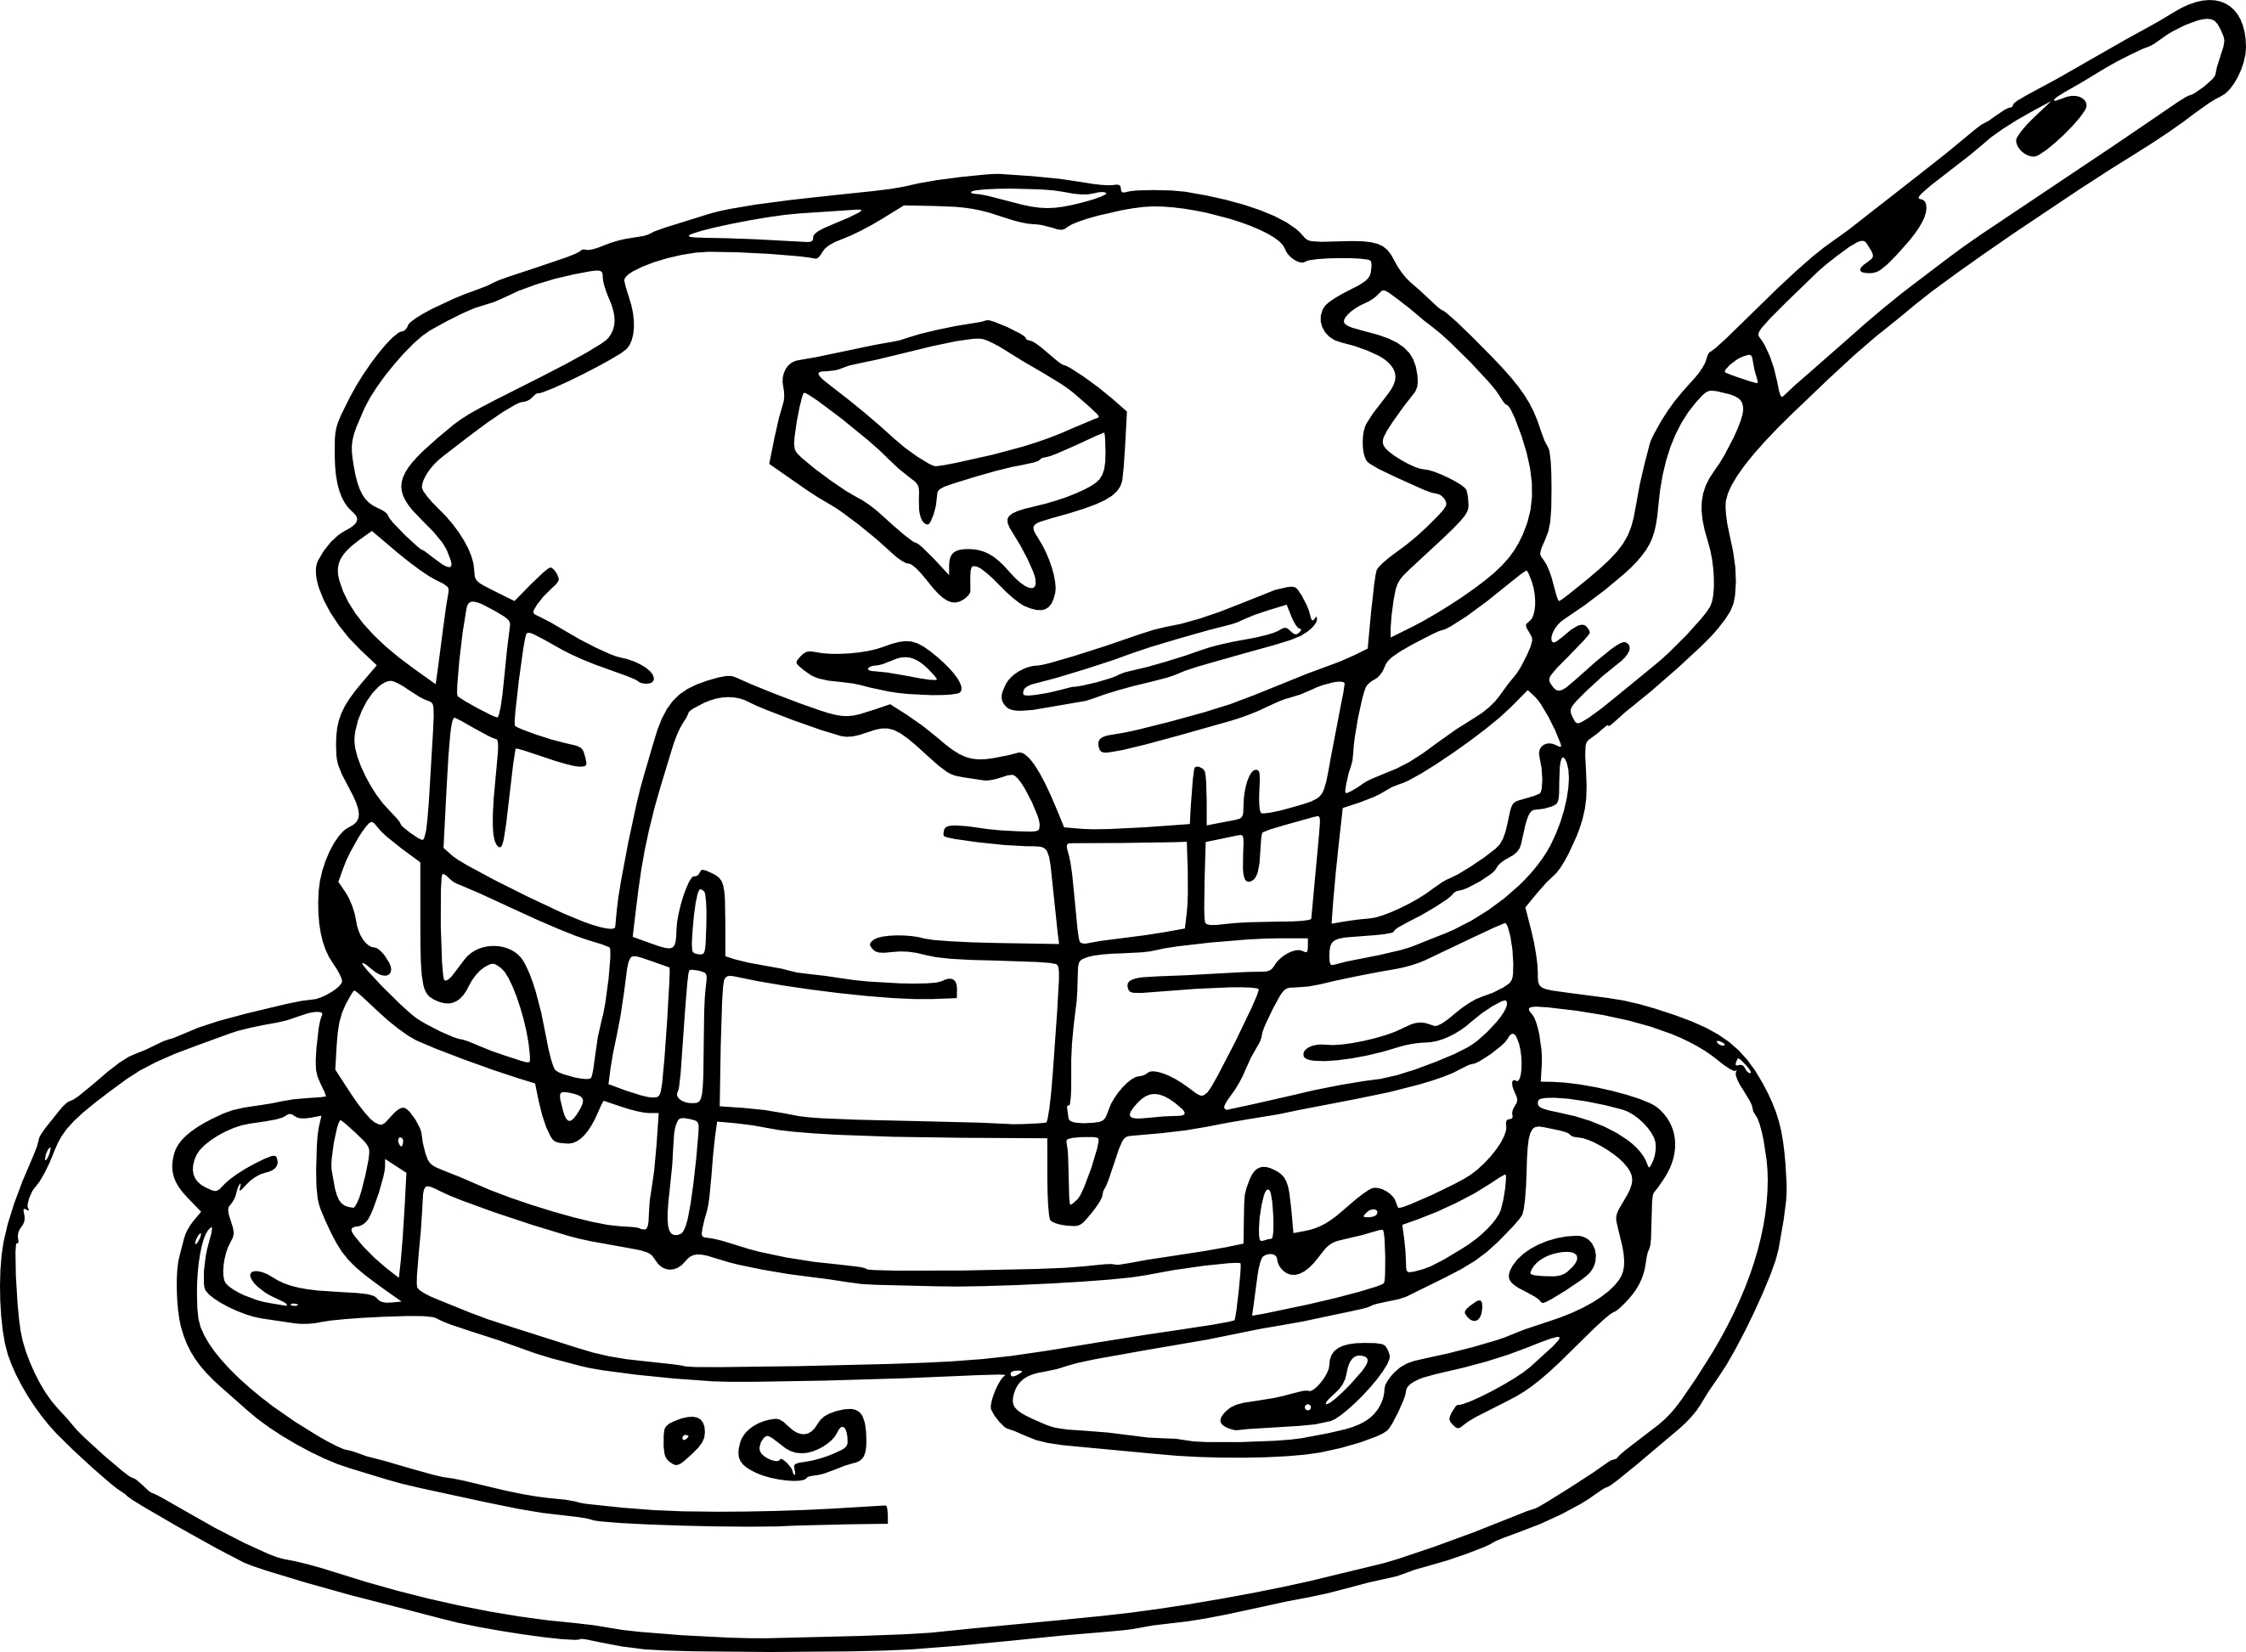 Coloriage crepes